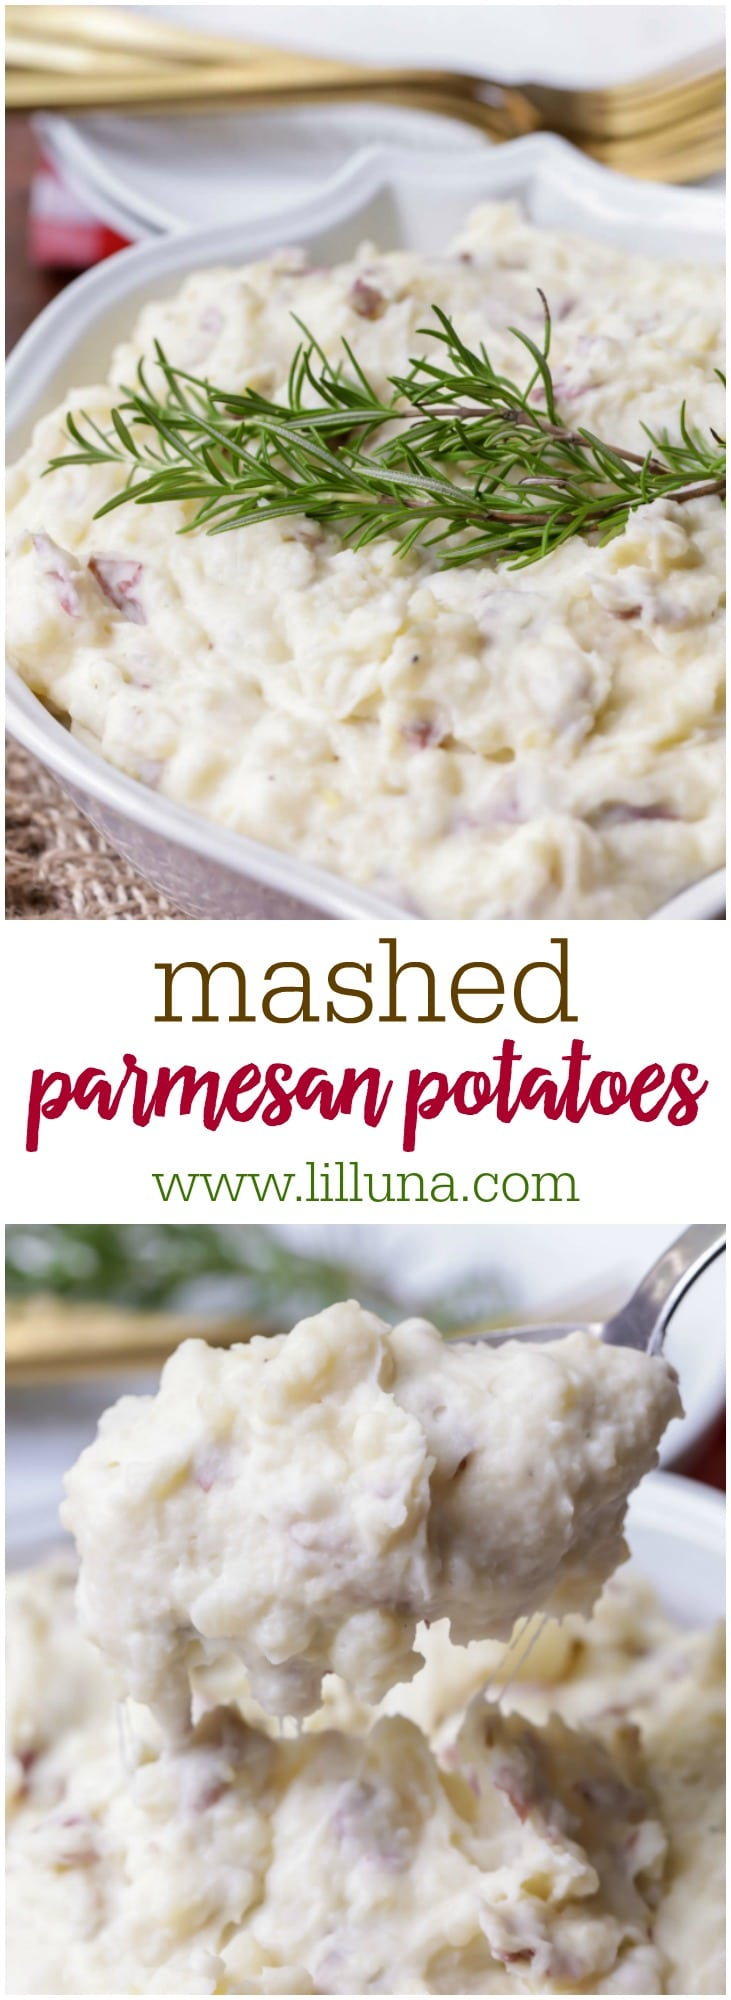 Mashed Parmesan Potatoes - so creamy and filled with half & half, butter, sour cream, and Parmesan cheese making them so flavorful and delicious!